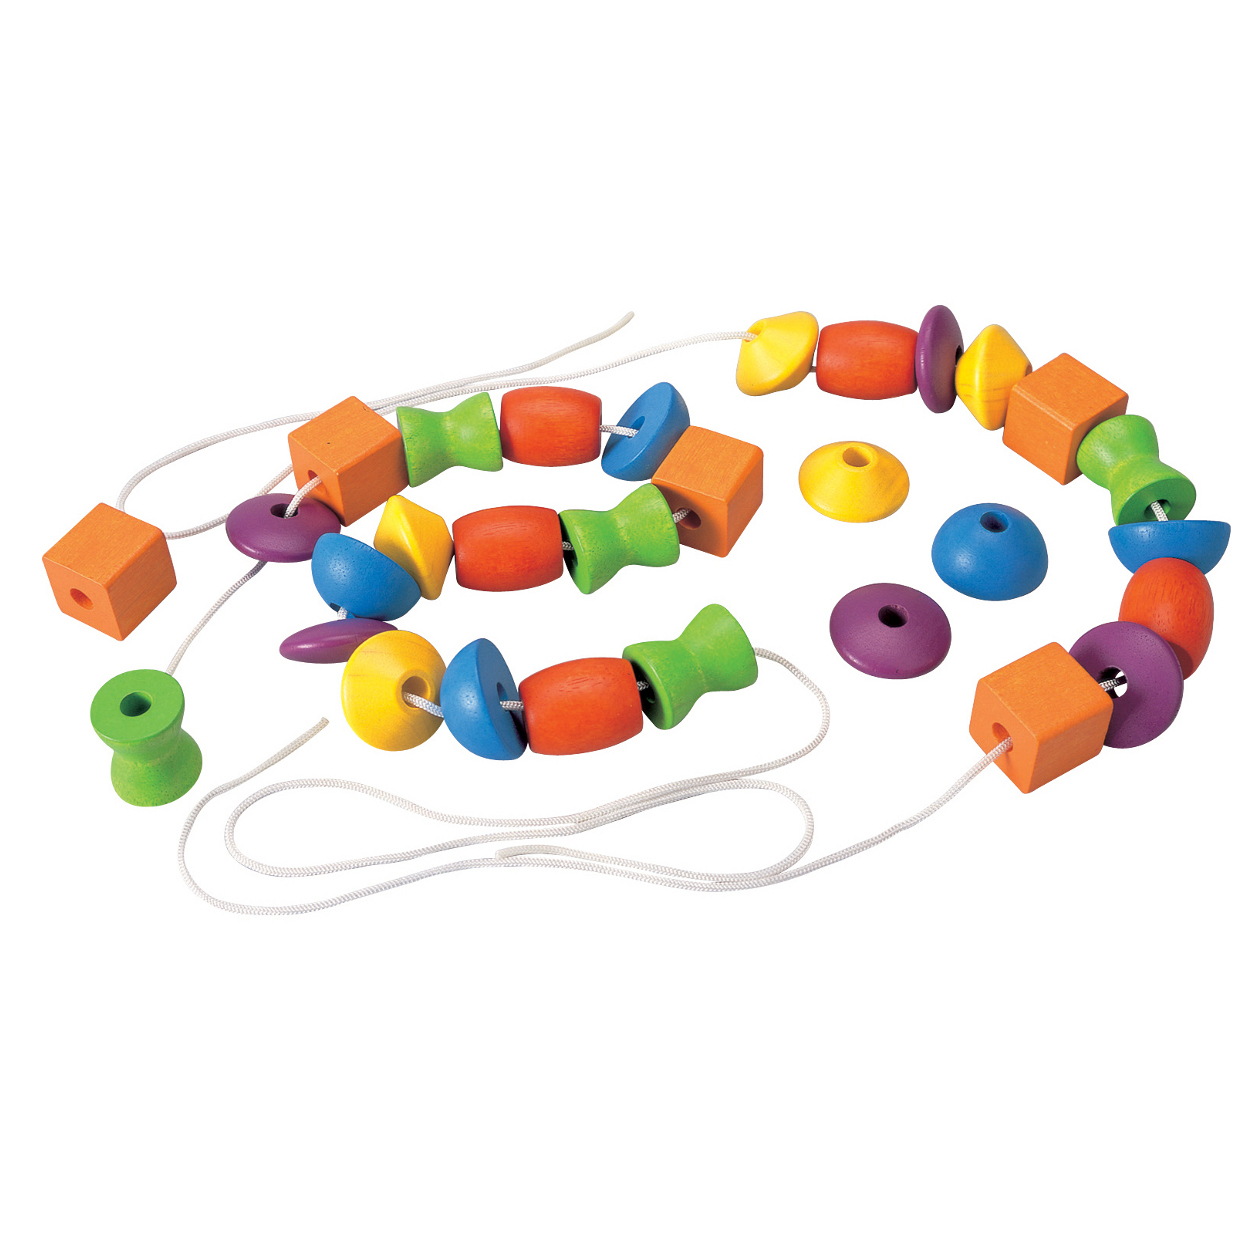 Lacing Beads Wooden Educational Toy